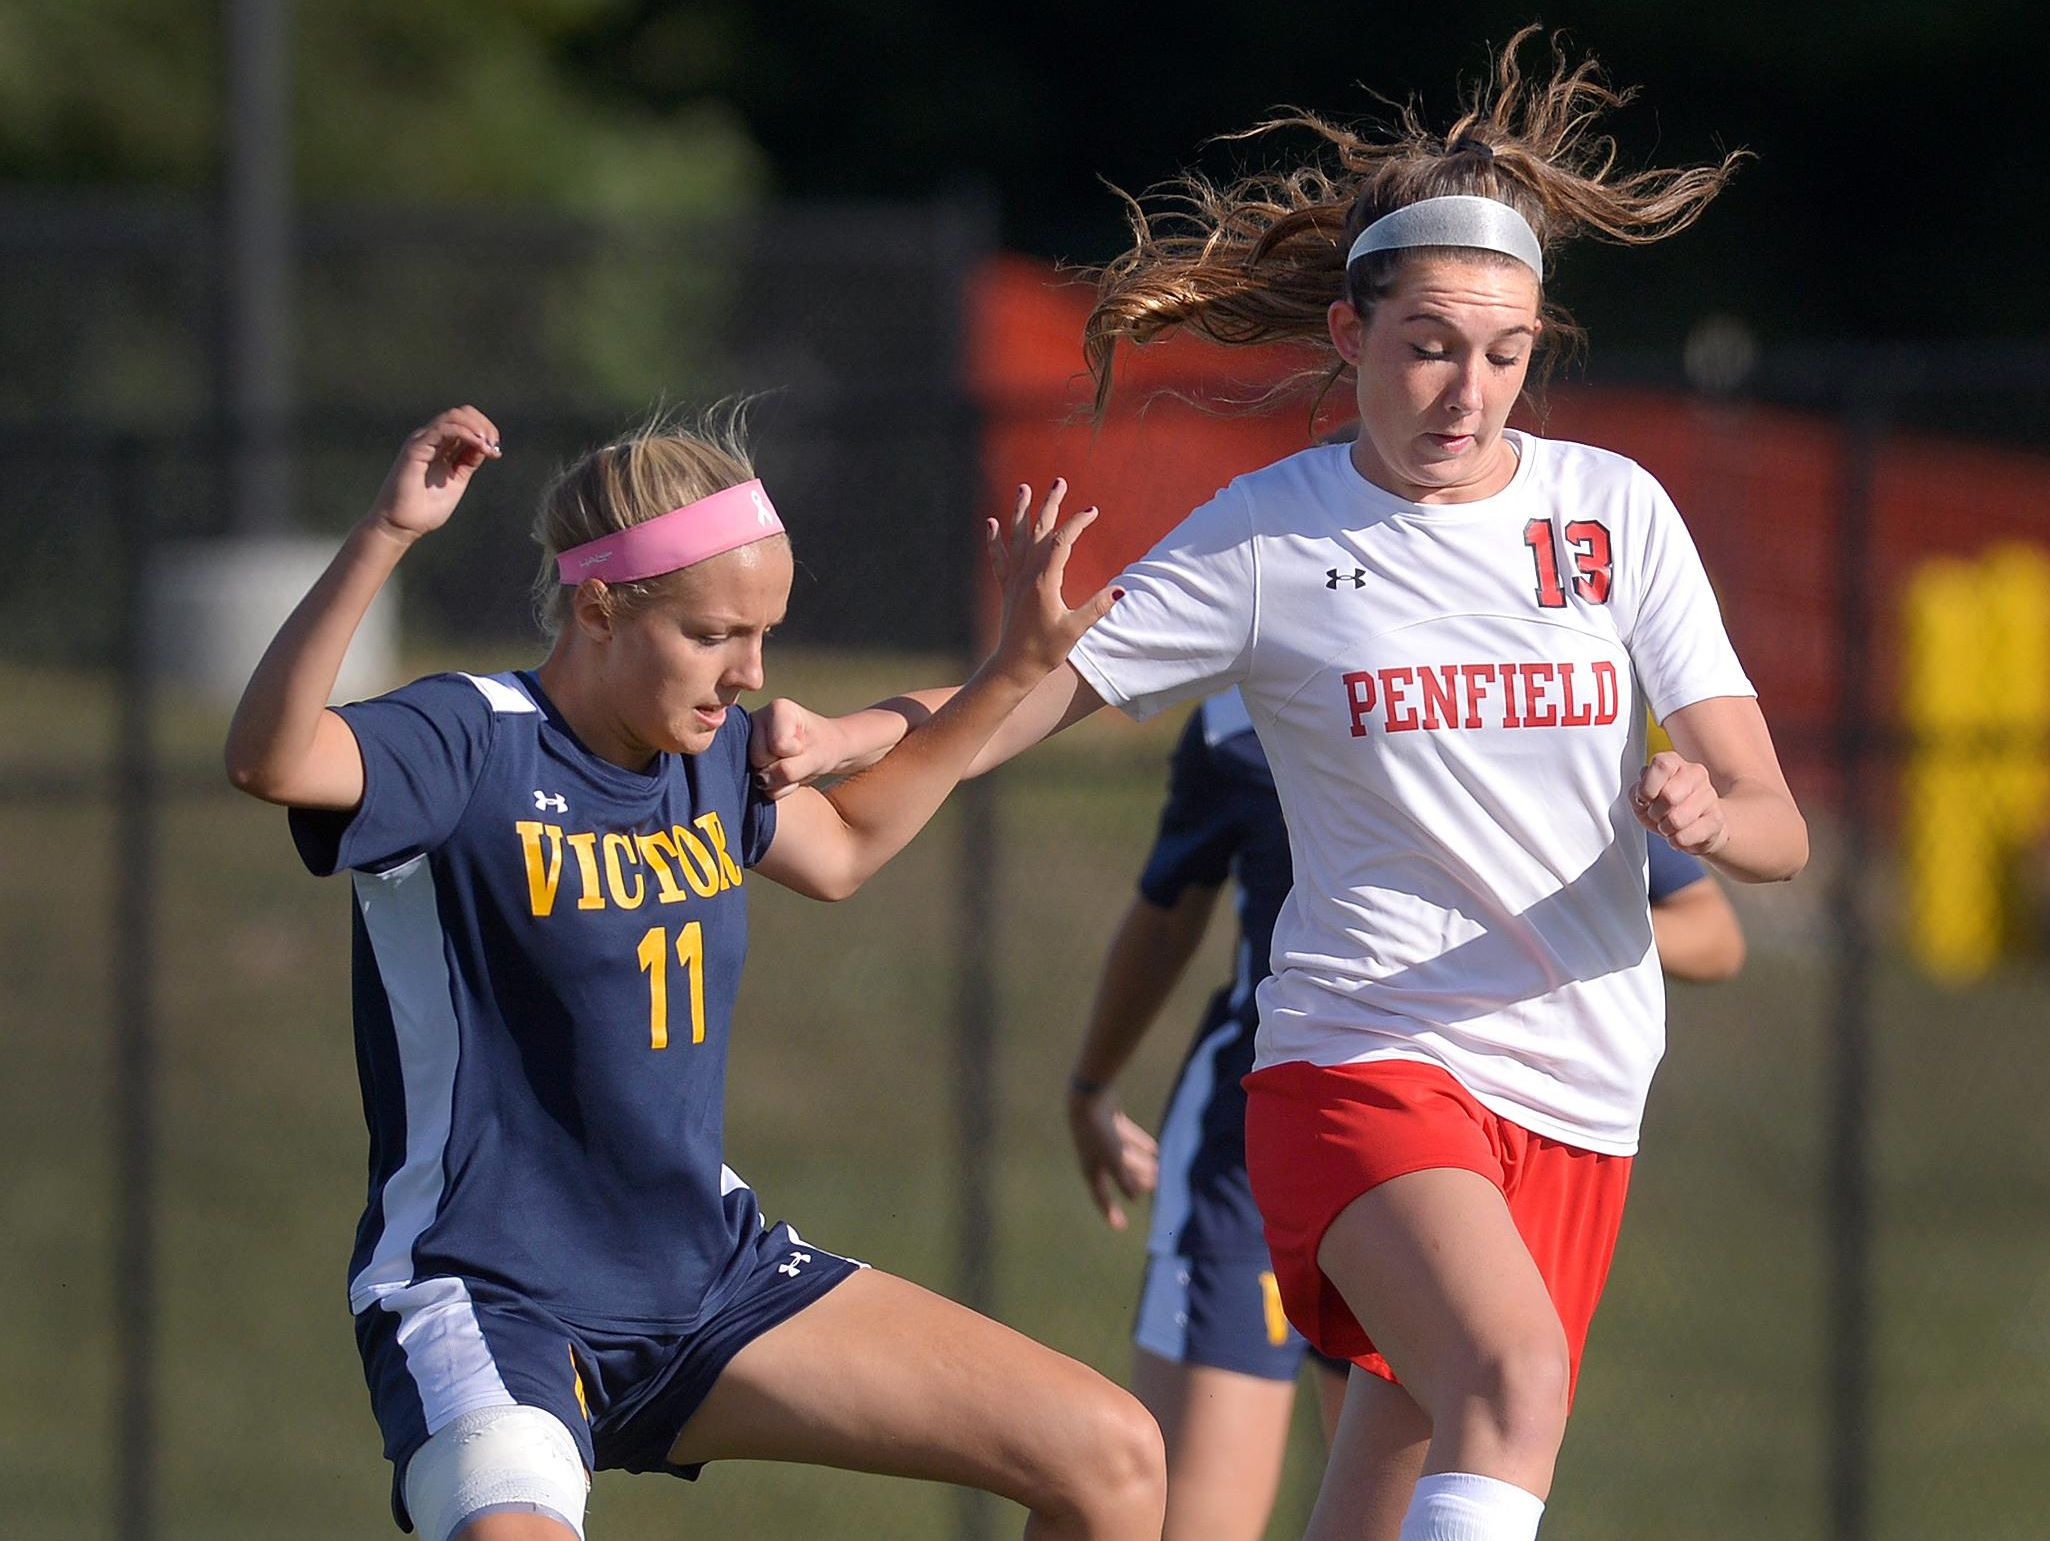 Penfield and Bre McGrath, right, host No. 1 Fairport at 6:30 p.m. Friday in a matchup of teams ranked in the D&C Large-School Girls Soccer Coaches' Poll. Fairport is No. 1; the Patriots are No. 7.